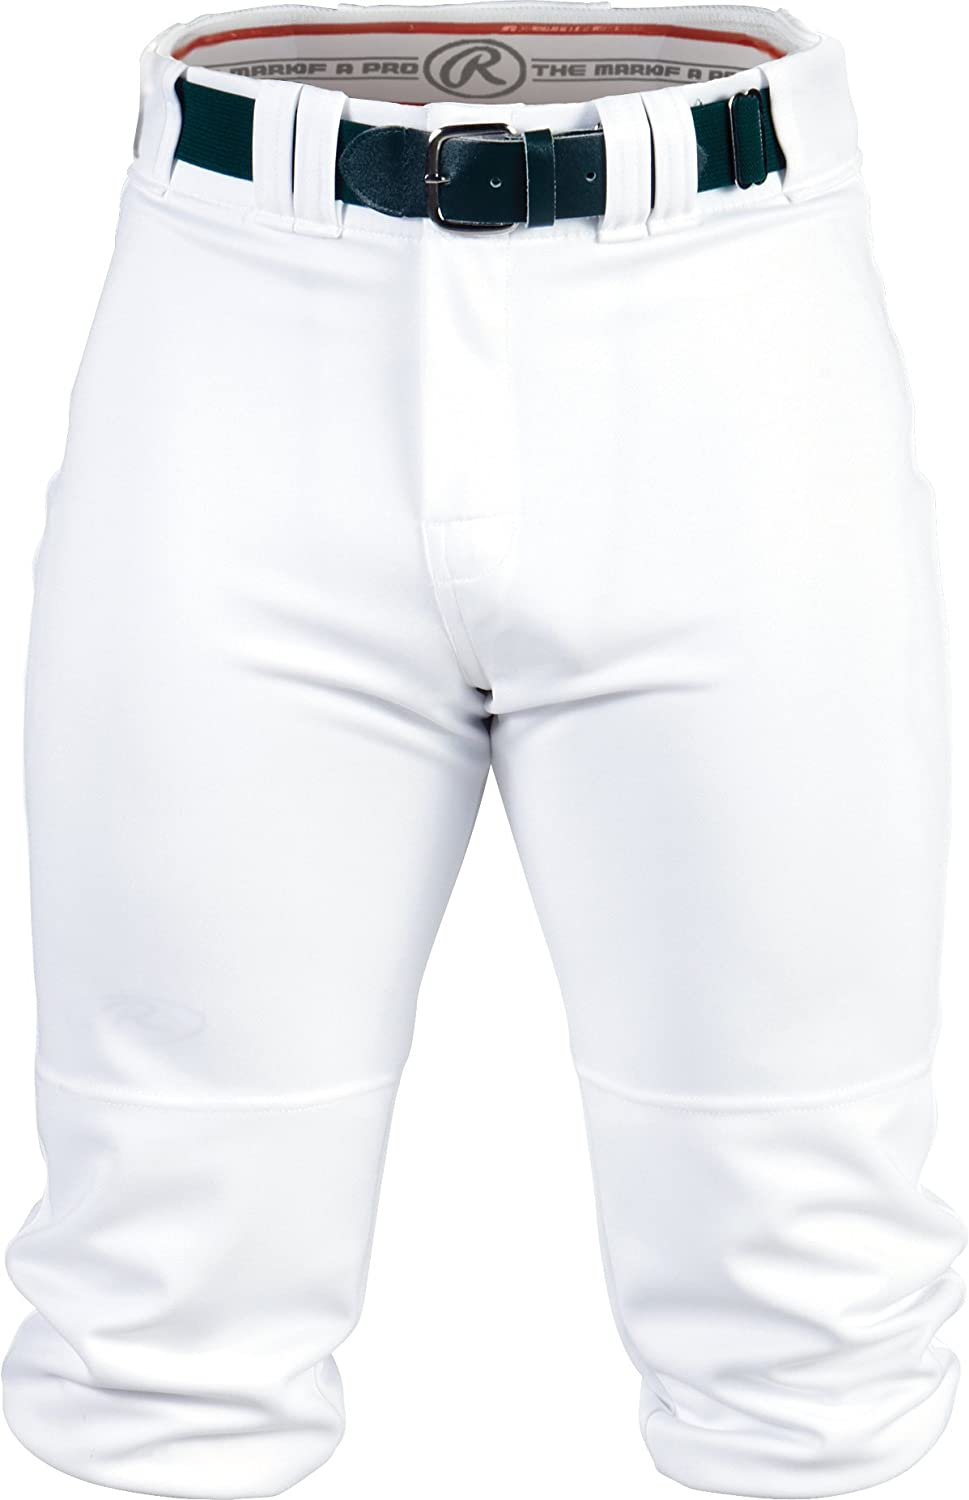 Amazon.com : Rawlings Youth Knee-High Pants : Sports & Outdoors